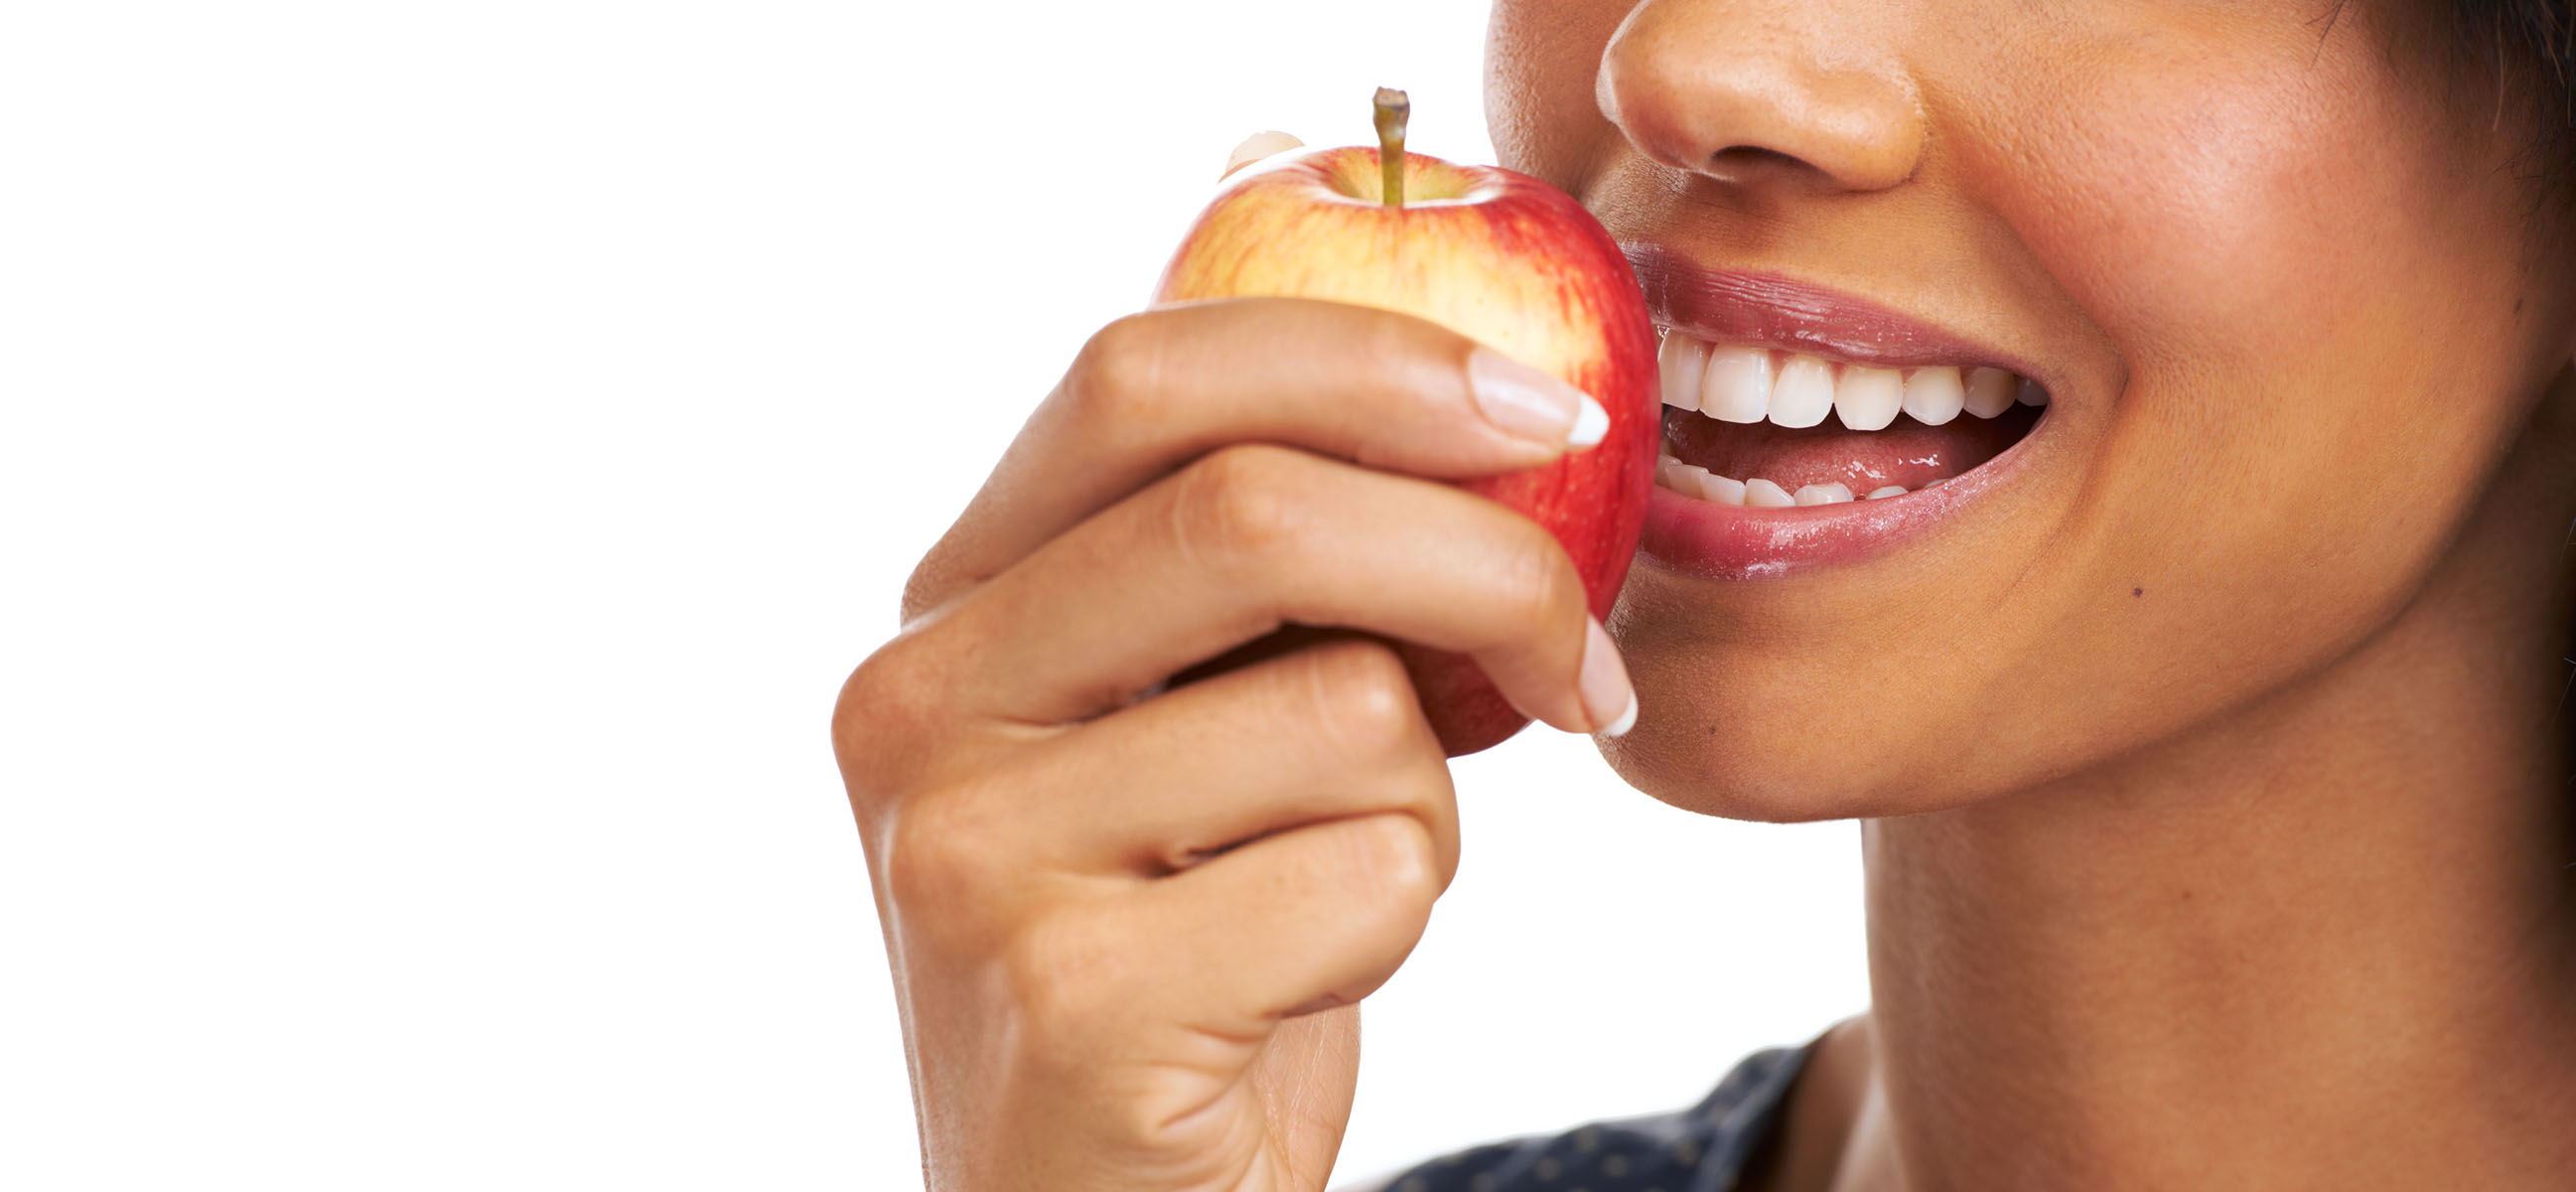 bite into an apple with strong dental implants